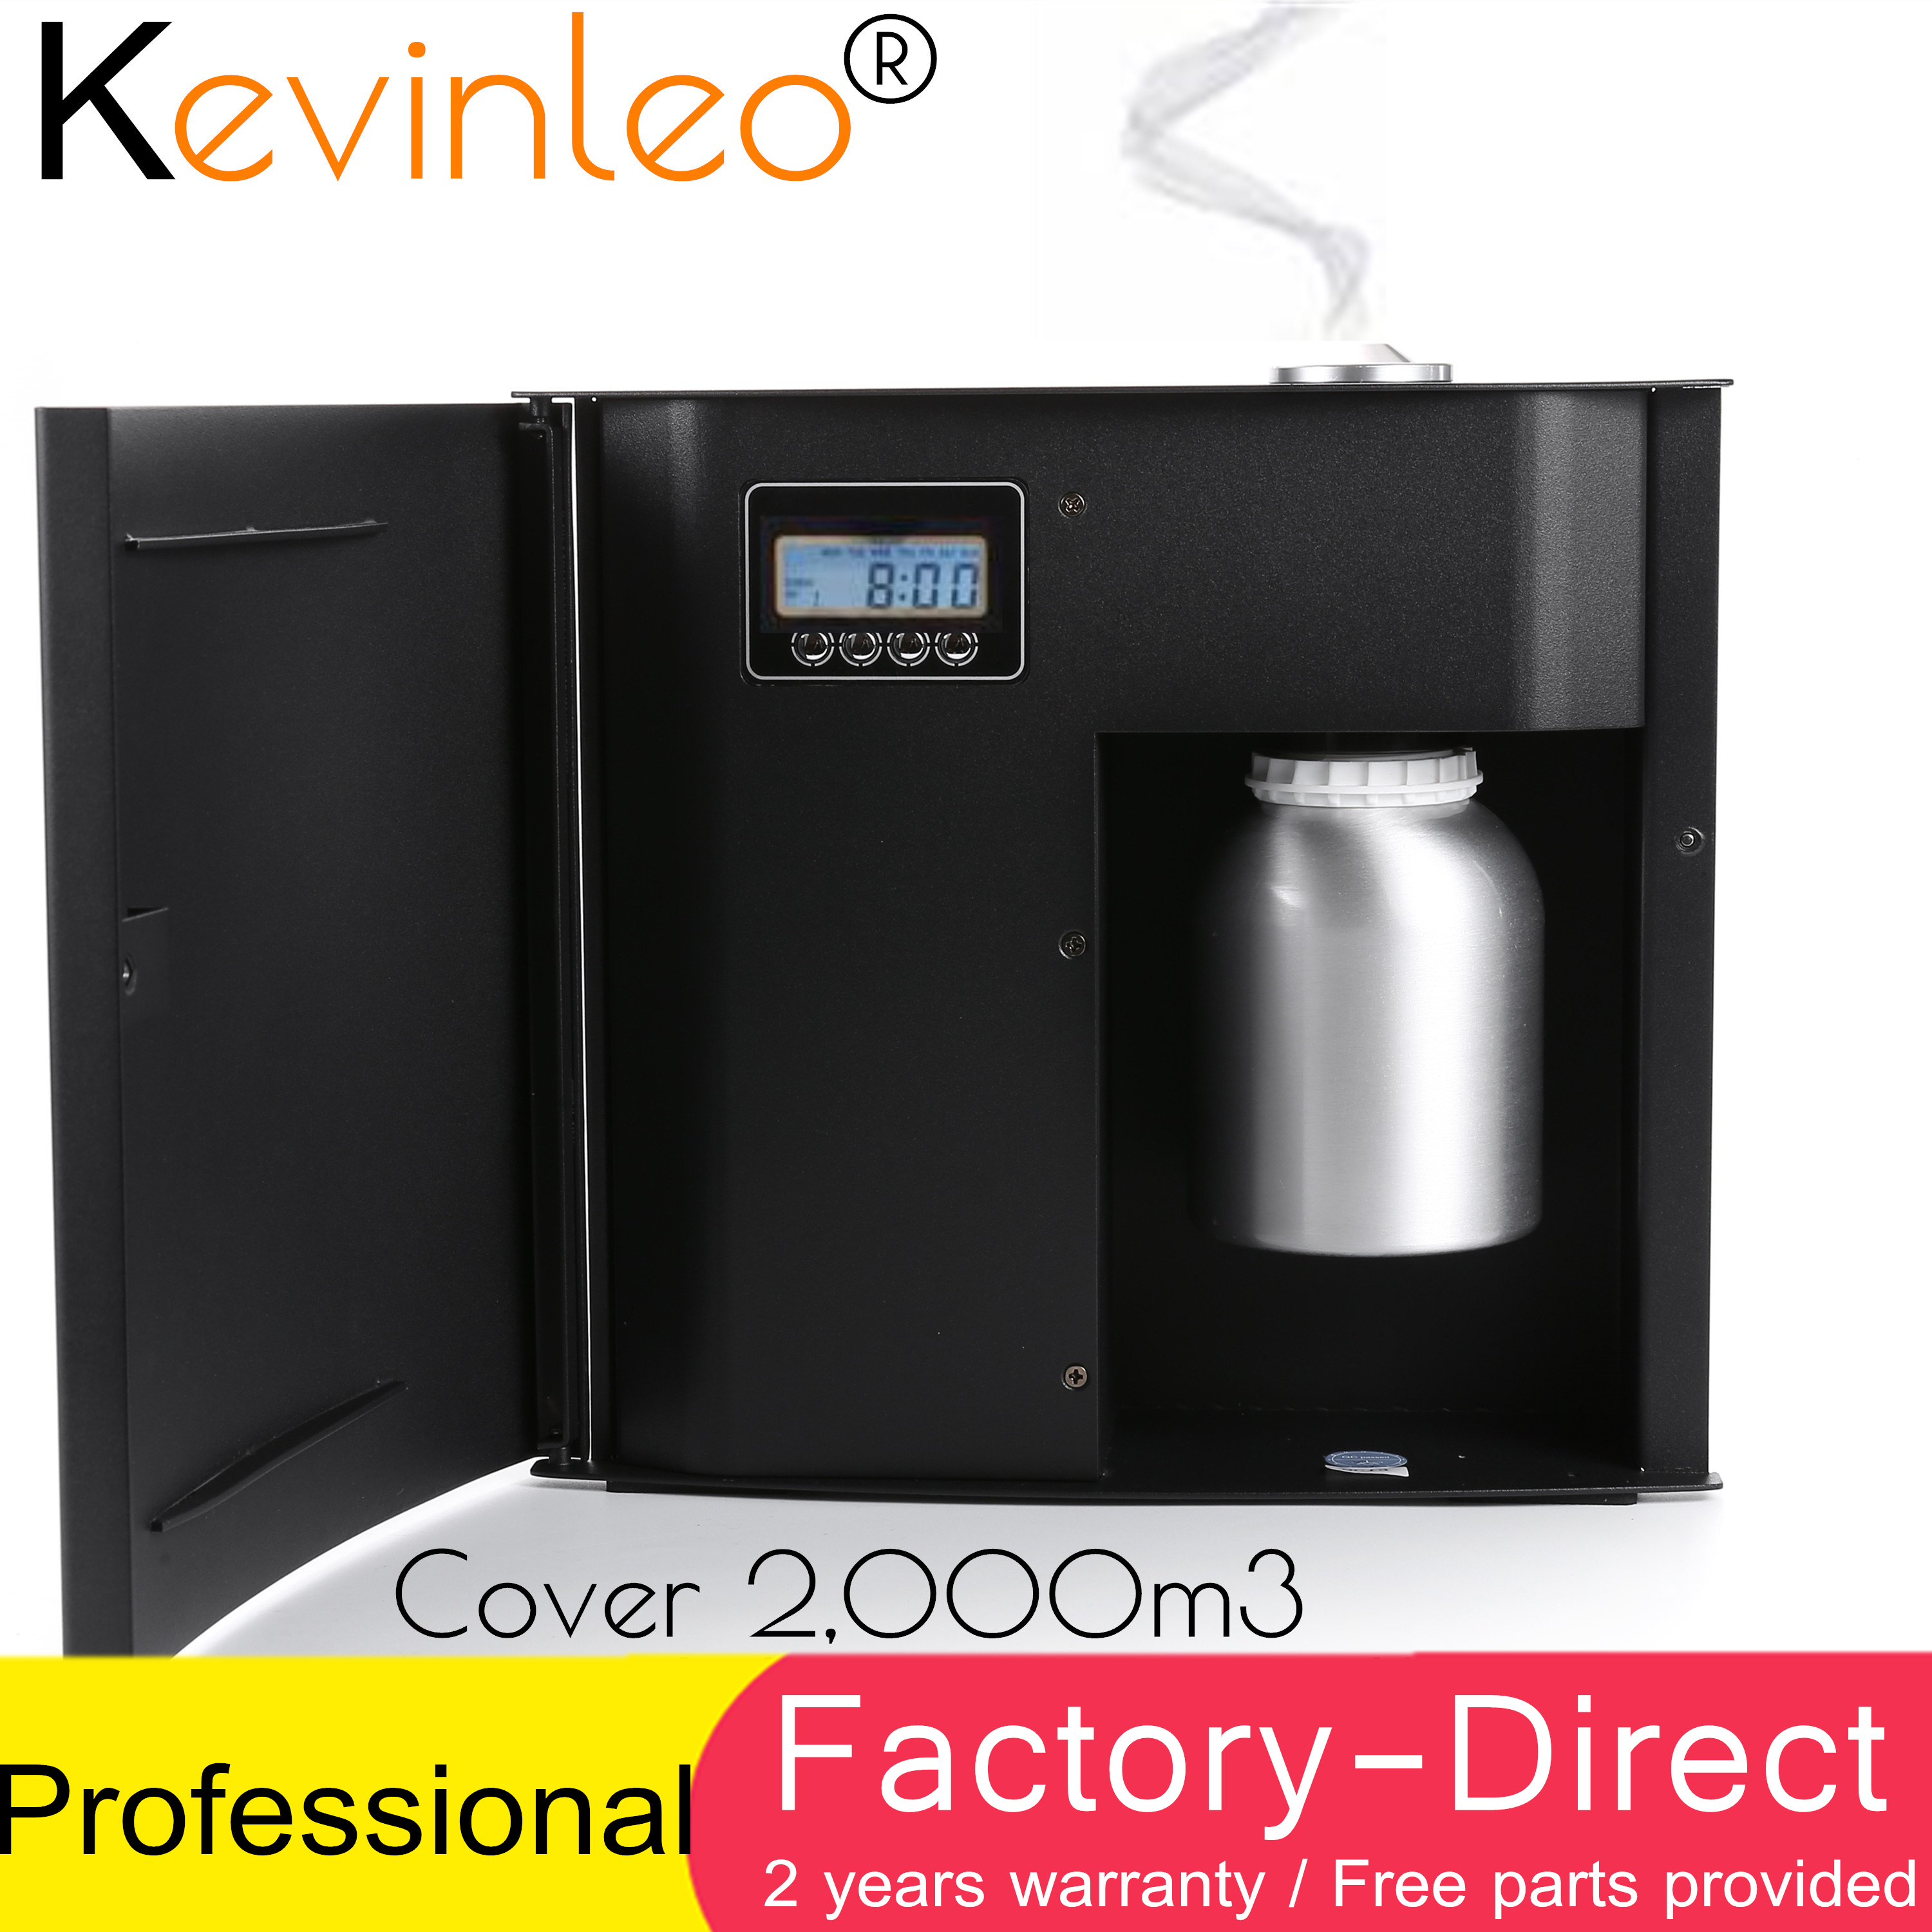 7,500 sq.ft Scent Machine Fragrance Unit Coveragea Area 500ml Cartridge For Office Hotel Home Air Purifier Air Ionizer for HVAC